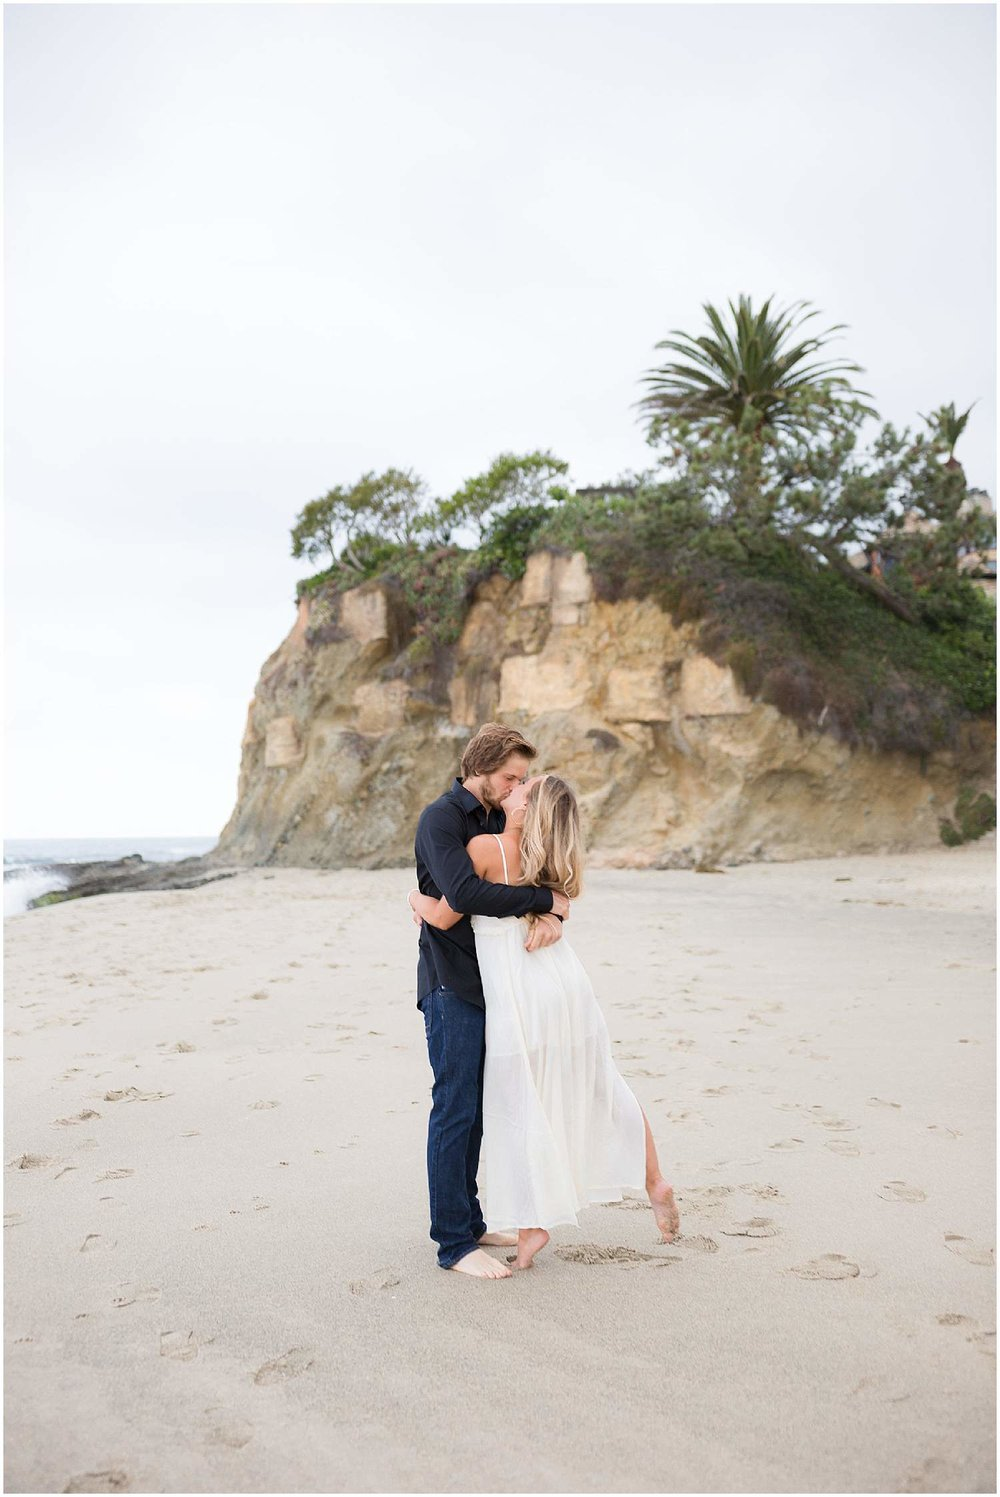 darian_shantay_photography_beach_engagement_0027.jpg